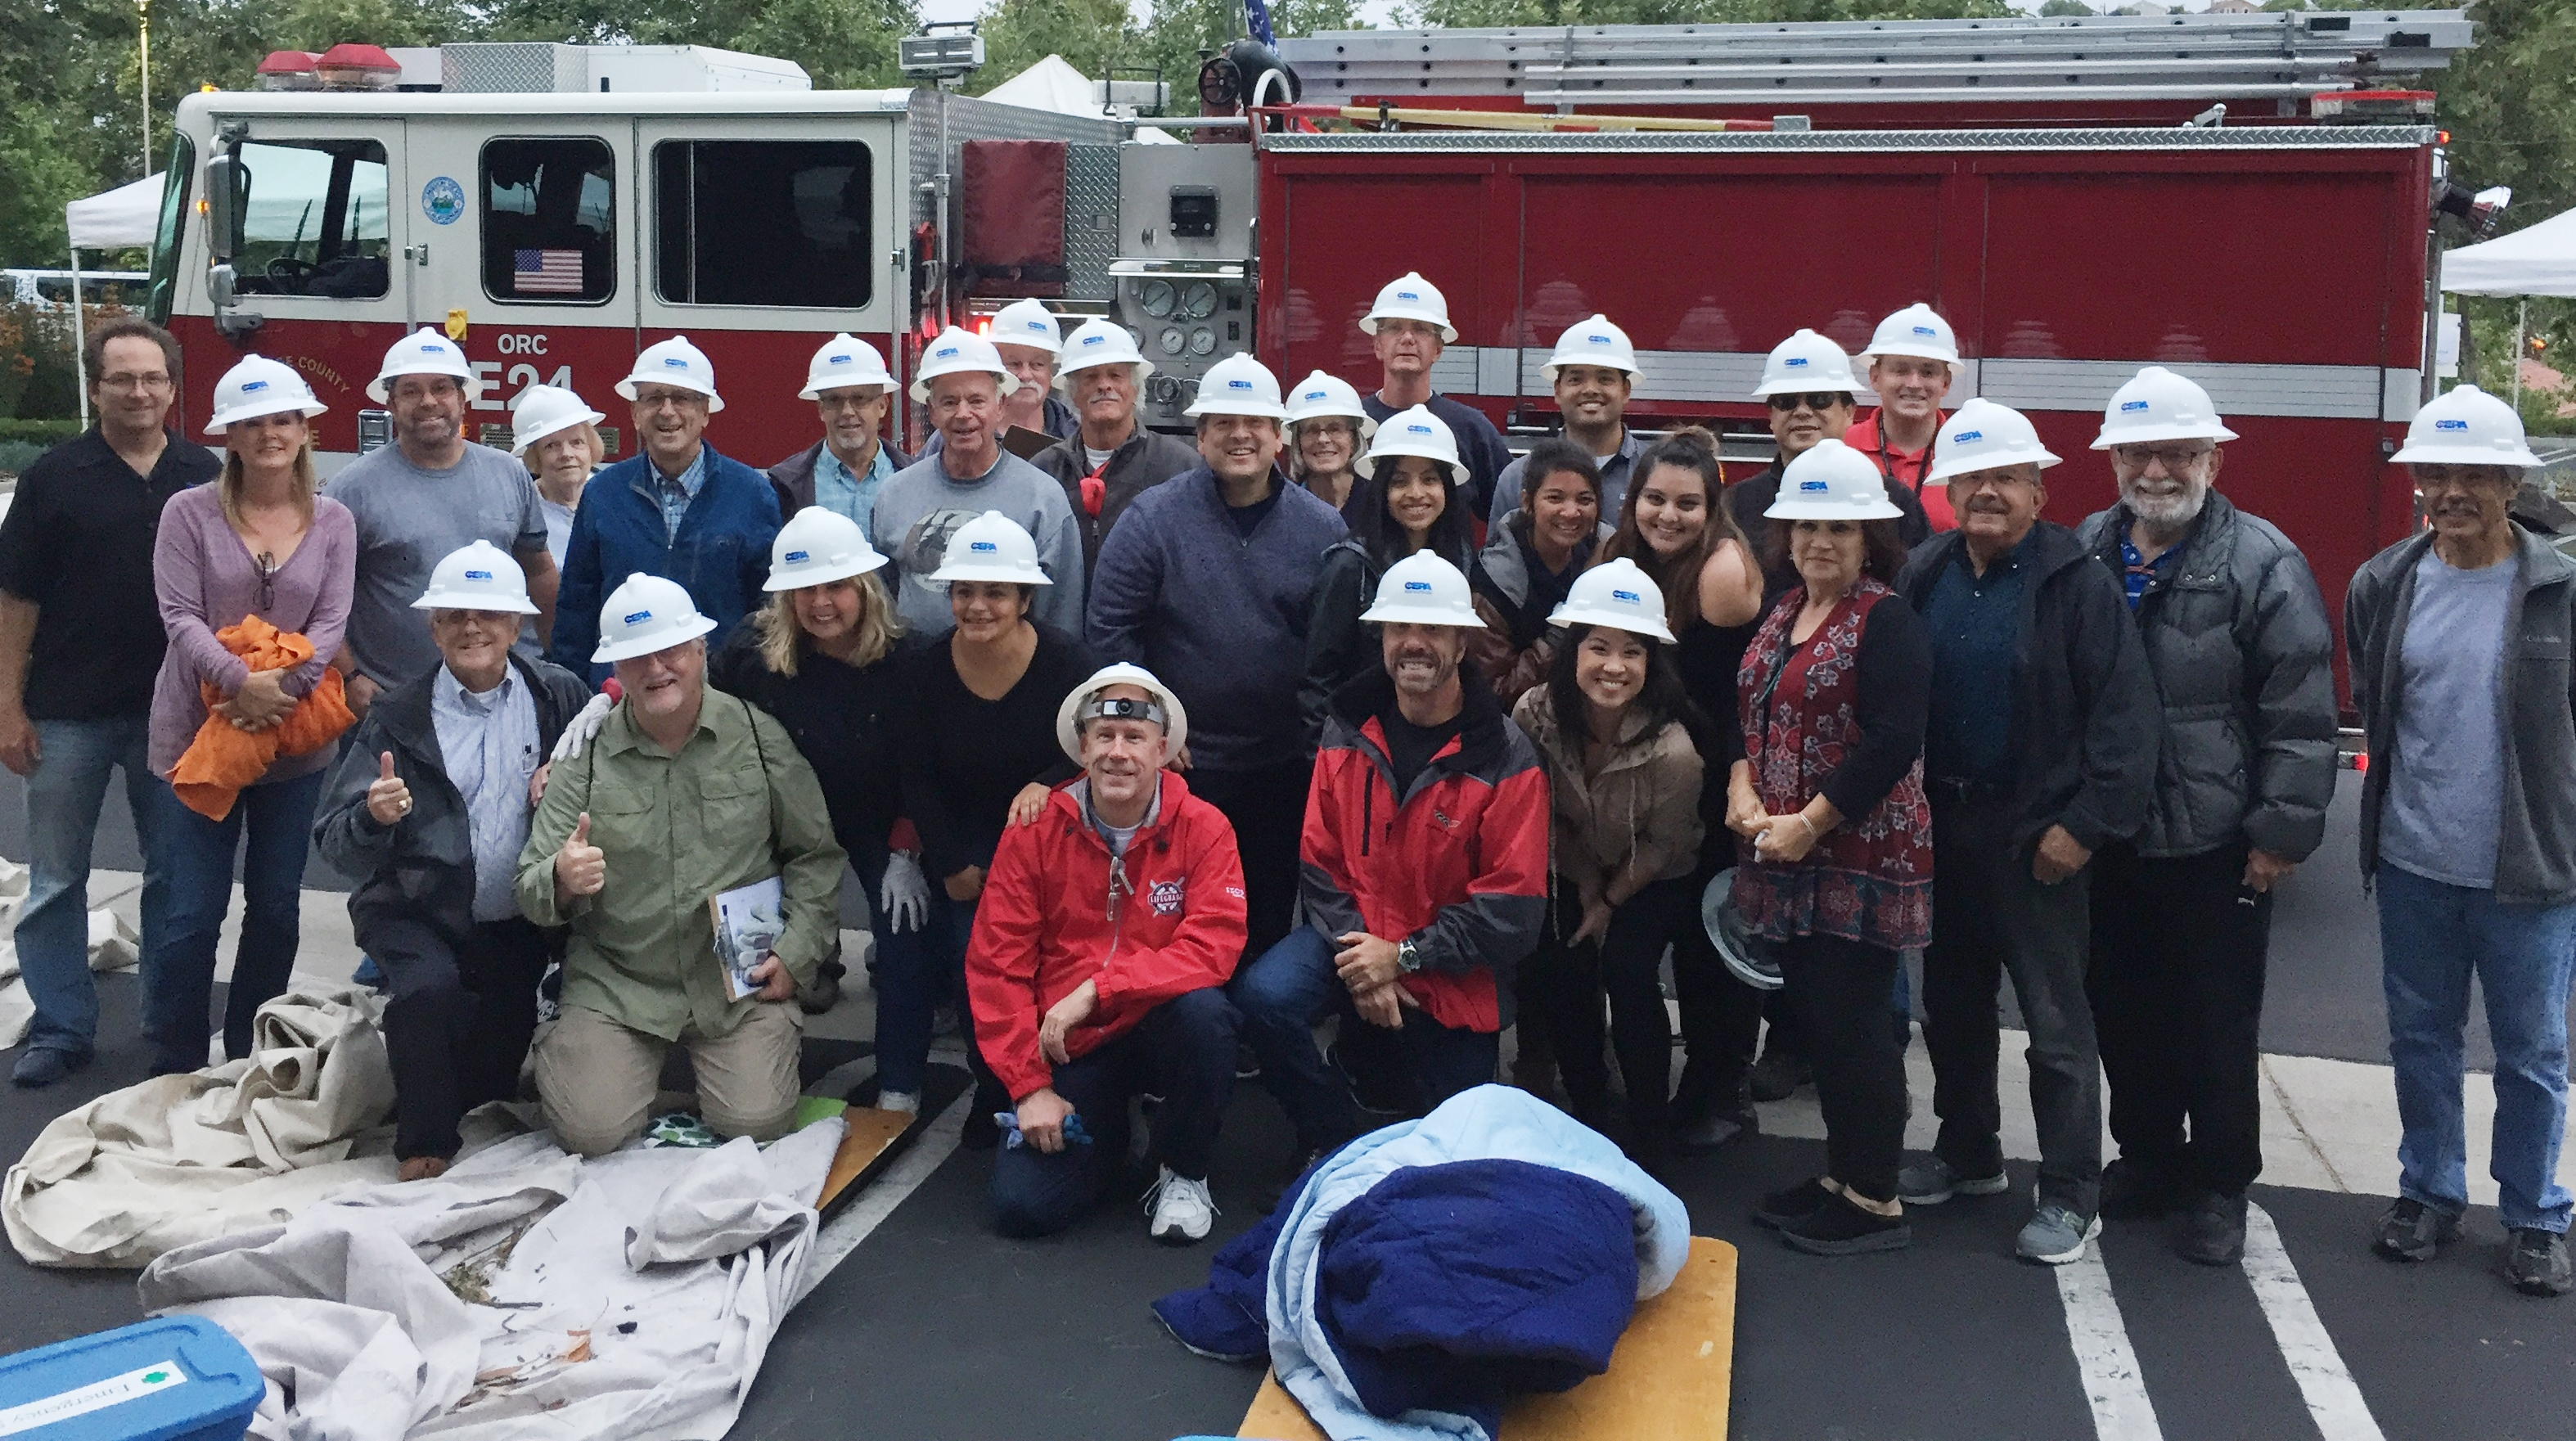 Community Emergency Preparedness Academy group posing in front of fire truck